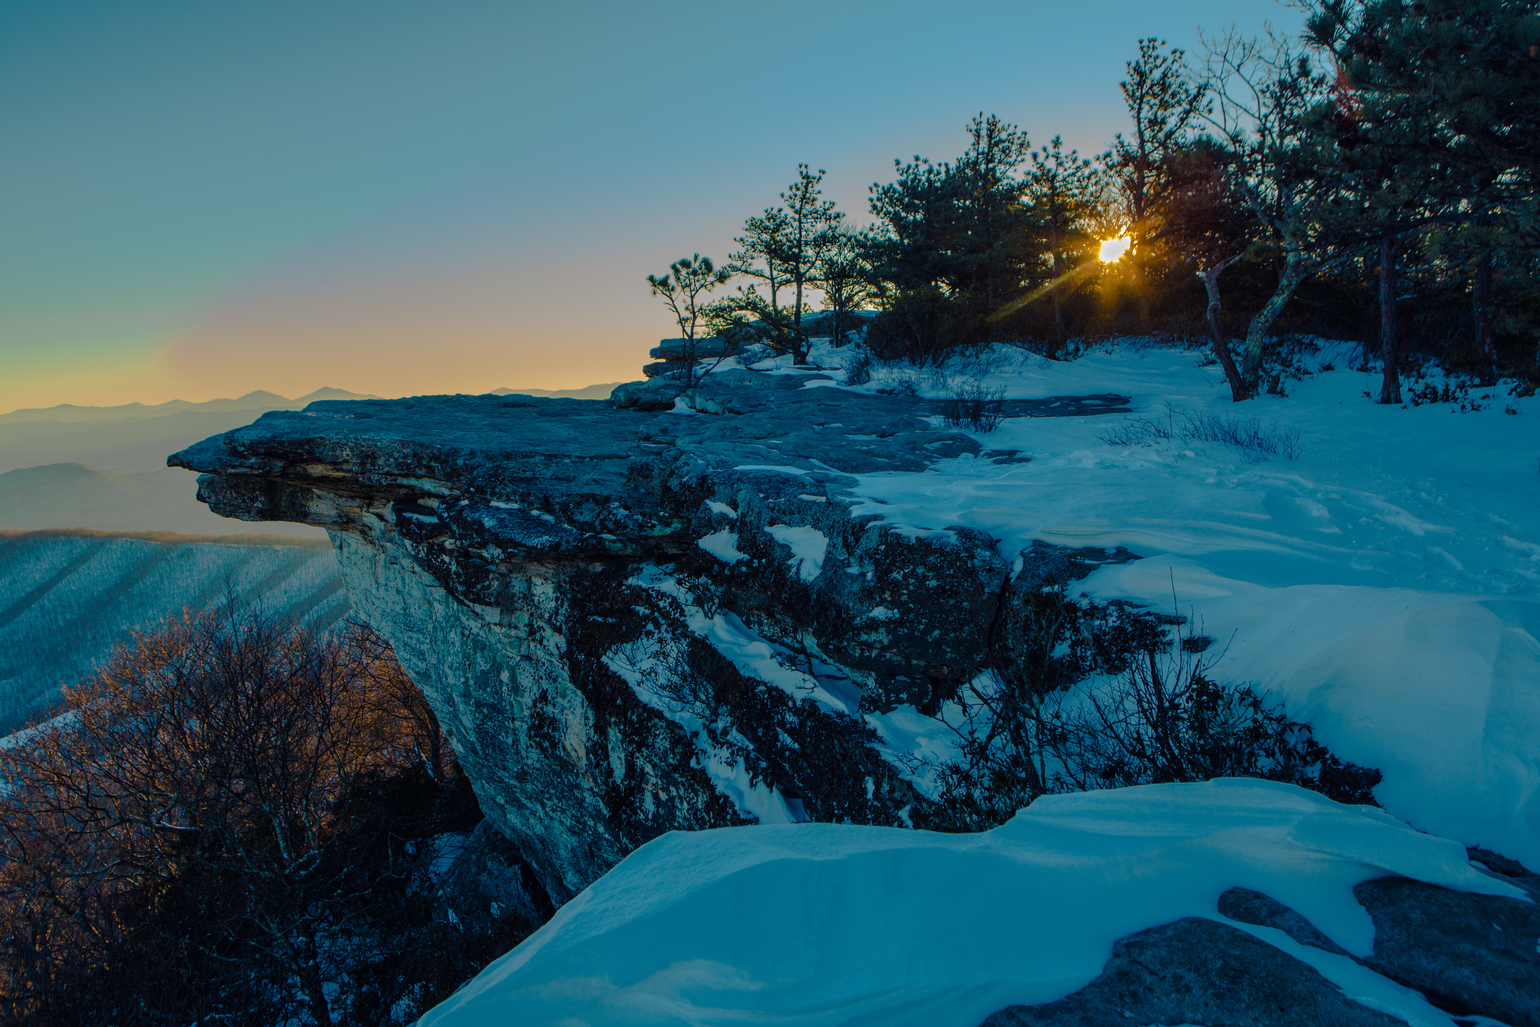 mcafee_knob_roanoke_snow_0814a